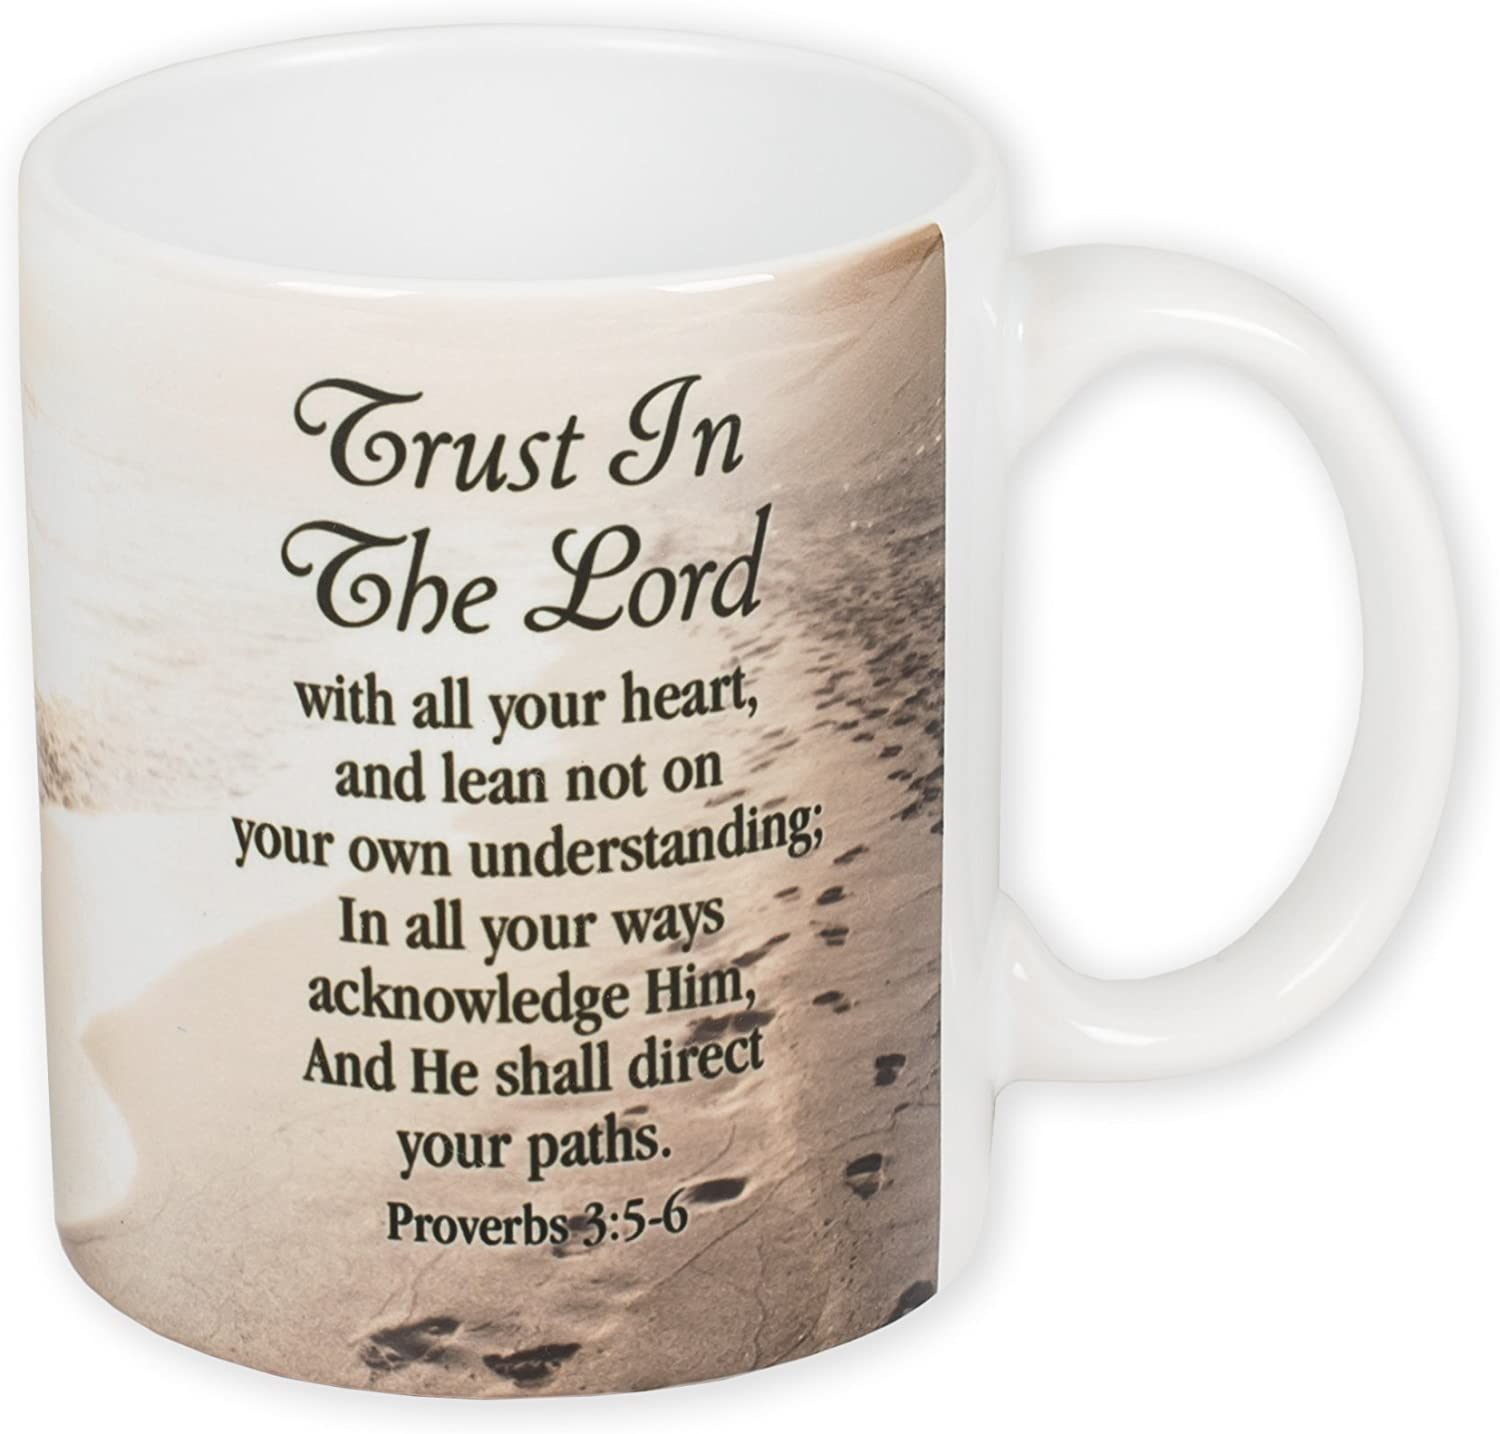 Trust In The Lord Beach Proverbs 3 5 6 Kjv 11 Ounce Ceramic Coffee Mug Amazon Co Uk Kitchen Home